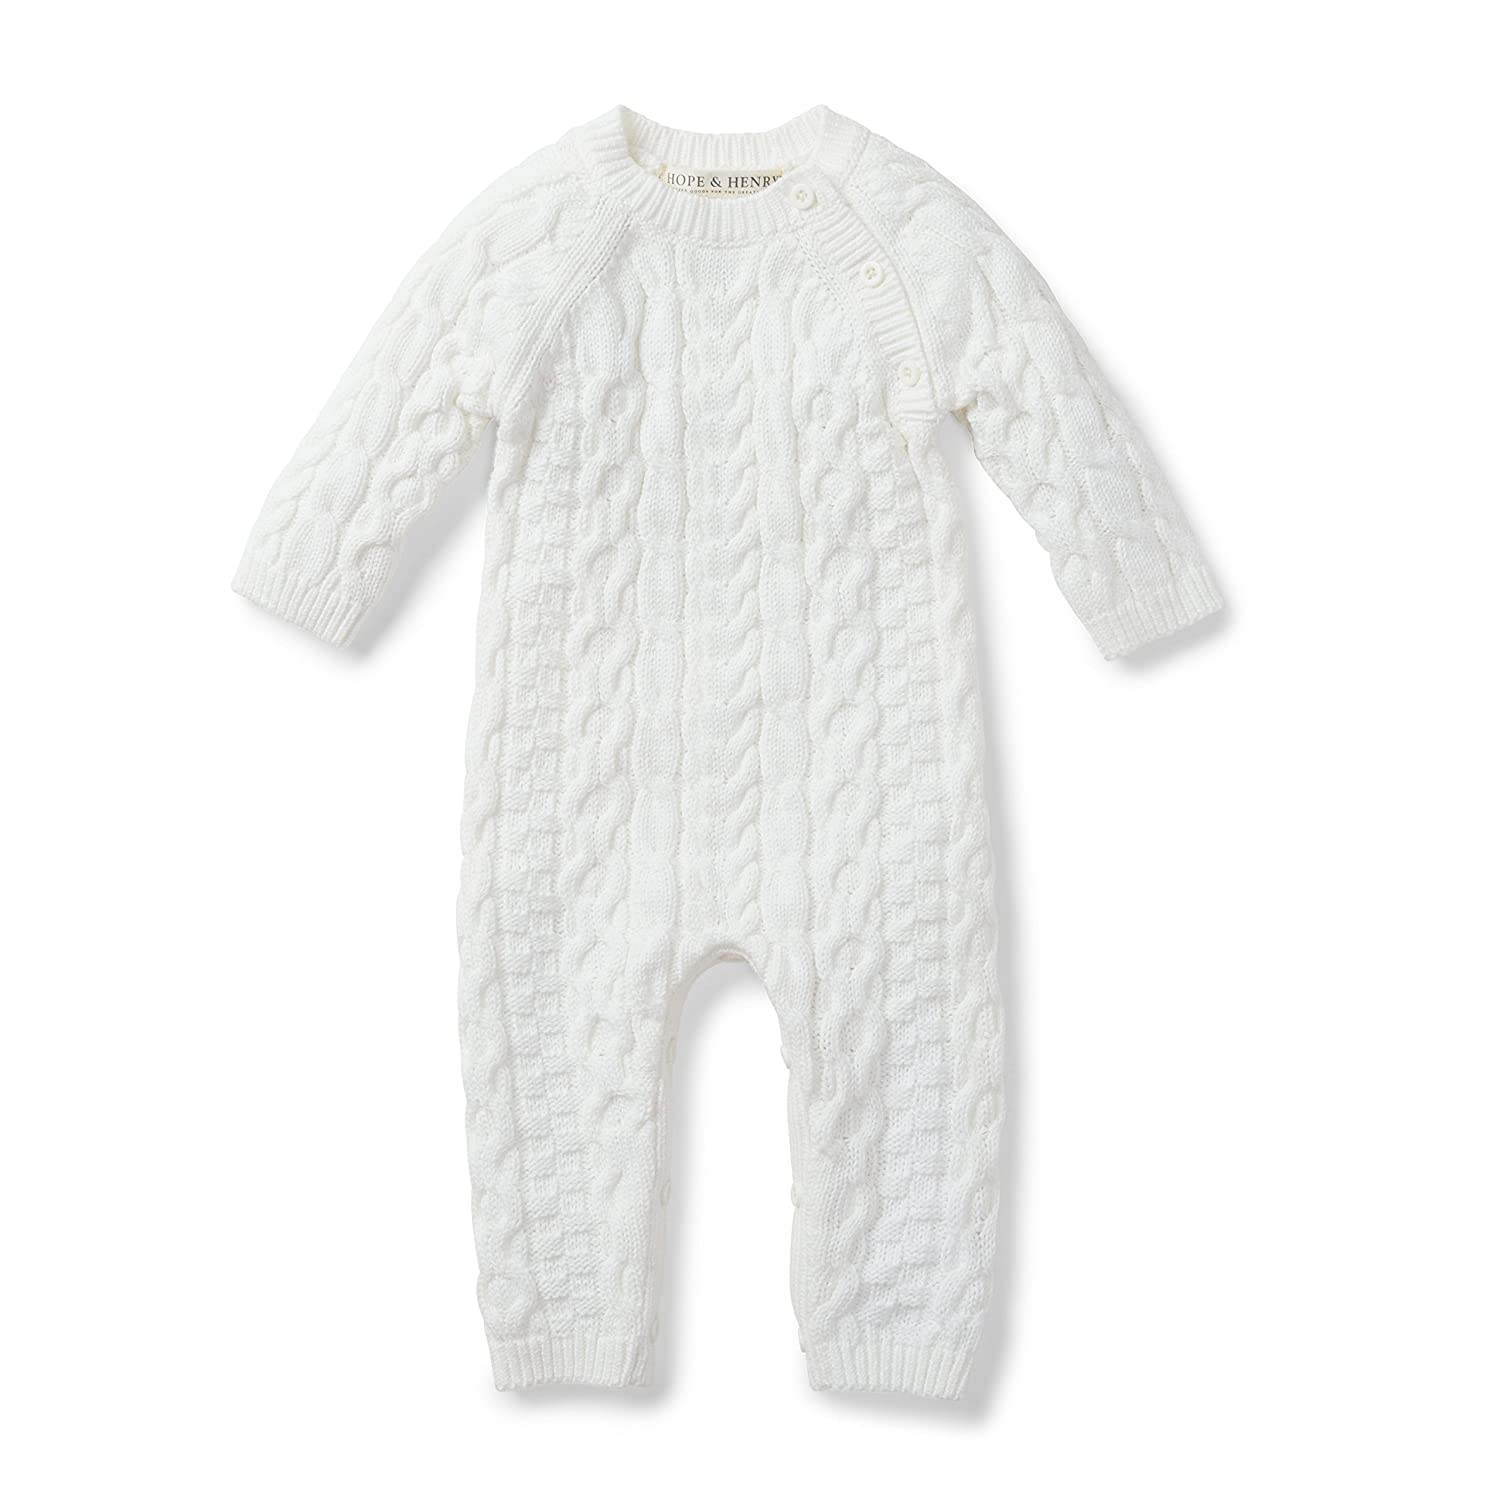 Amazon.com: Hope & Henry Layette White Cable Knit Sweater Romper ...